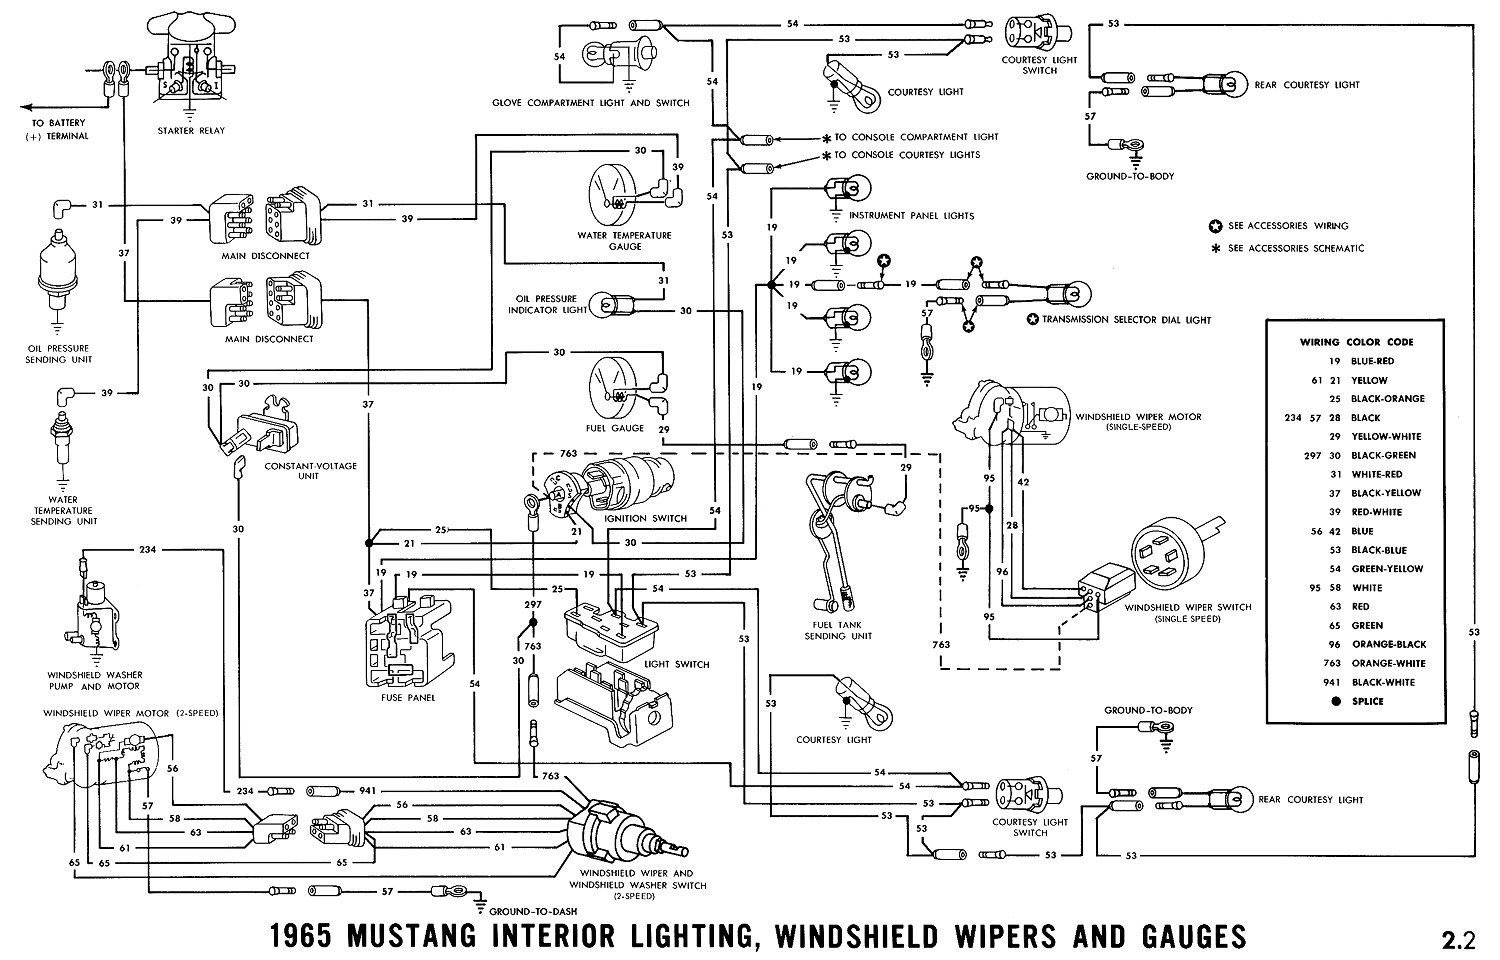 1965g 1968 mustang wiring diagram manual 1968 mustang repair manual Ford 545C Tractor at readyjetset.co